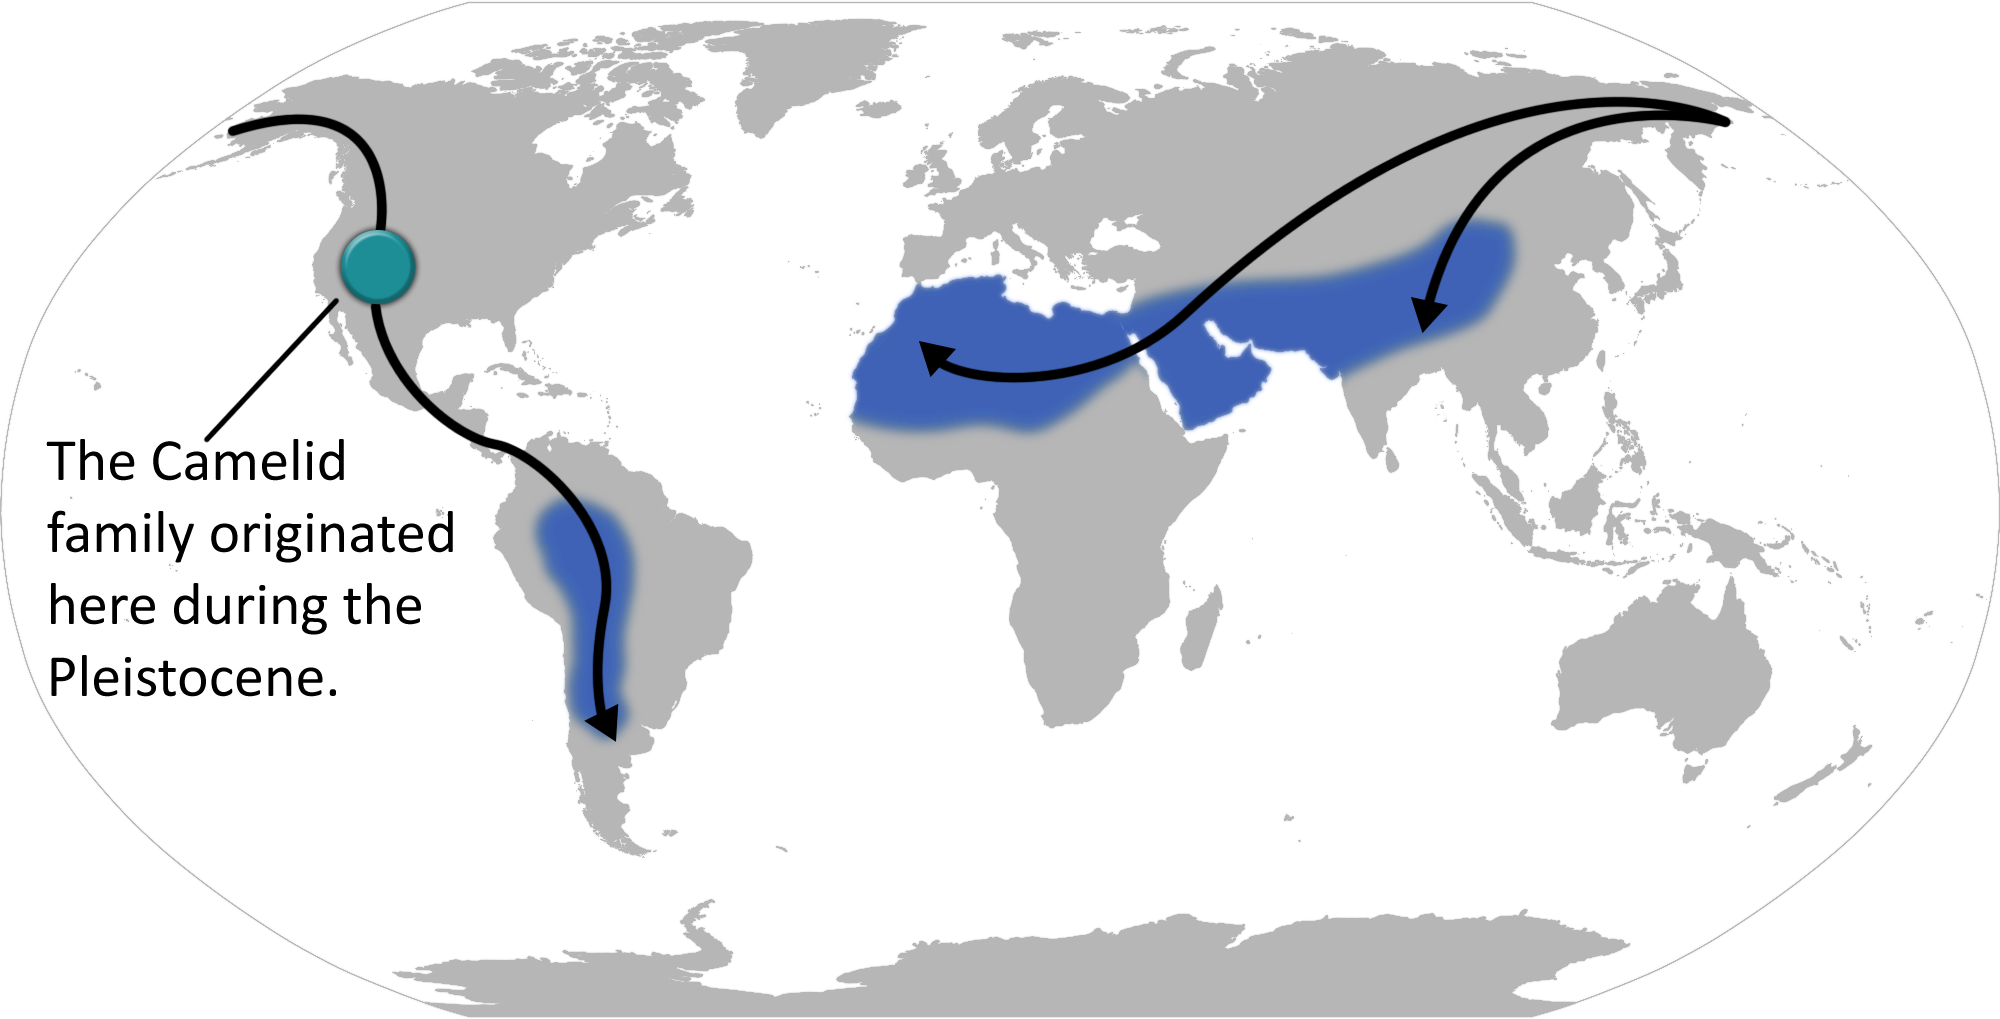 http://upload.wikimedia.org/wikipedia/commons/1/16/Camelid_locations_and_migration.png